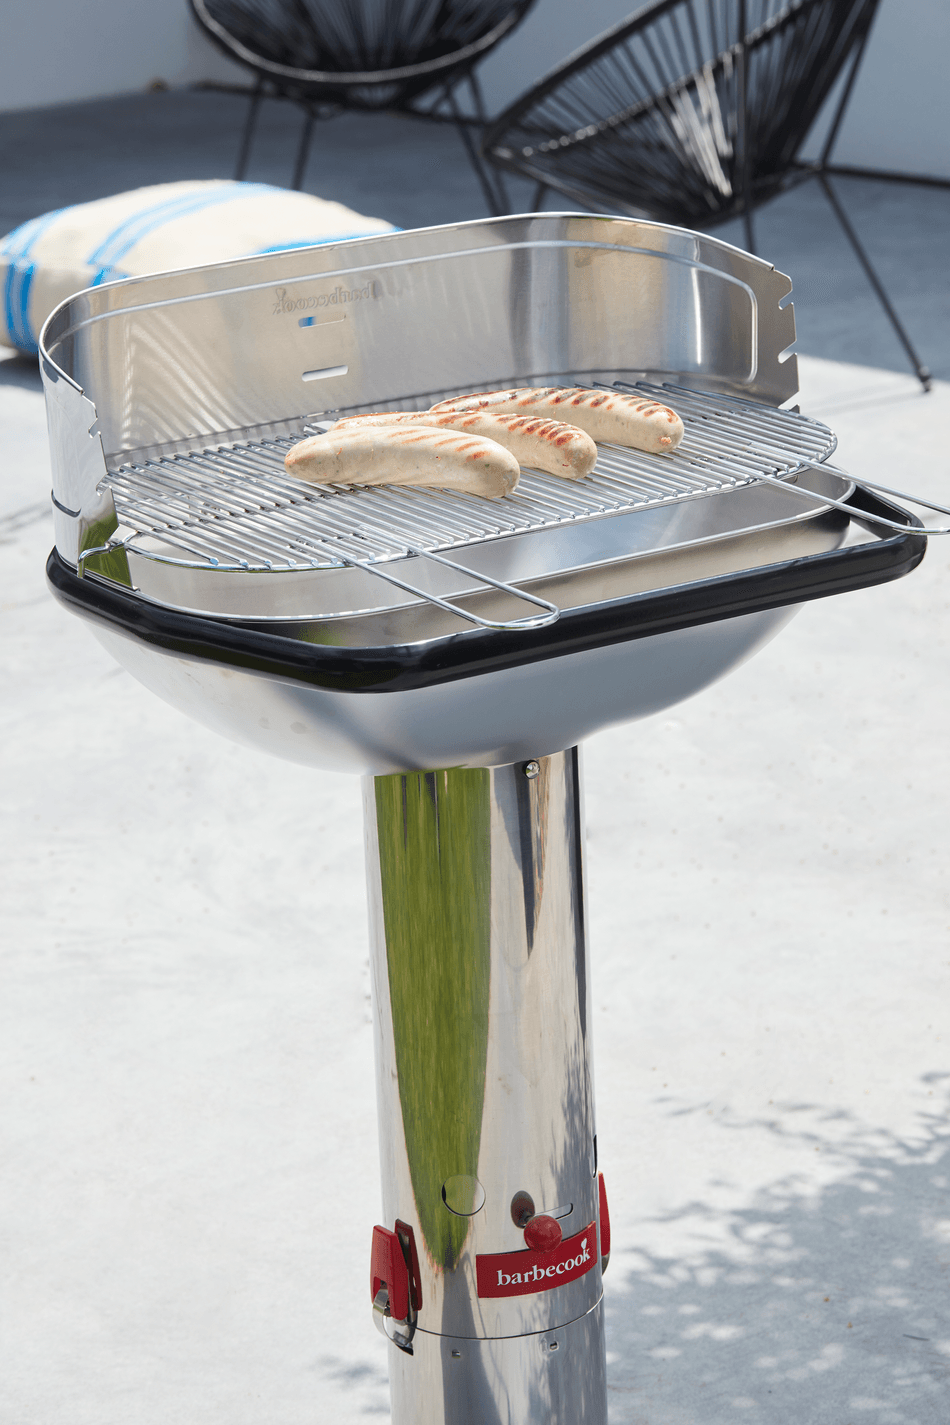 How does a Loewy 55 SST charcoal BBQ work?